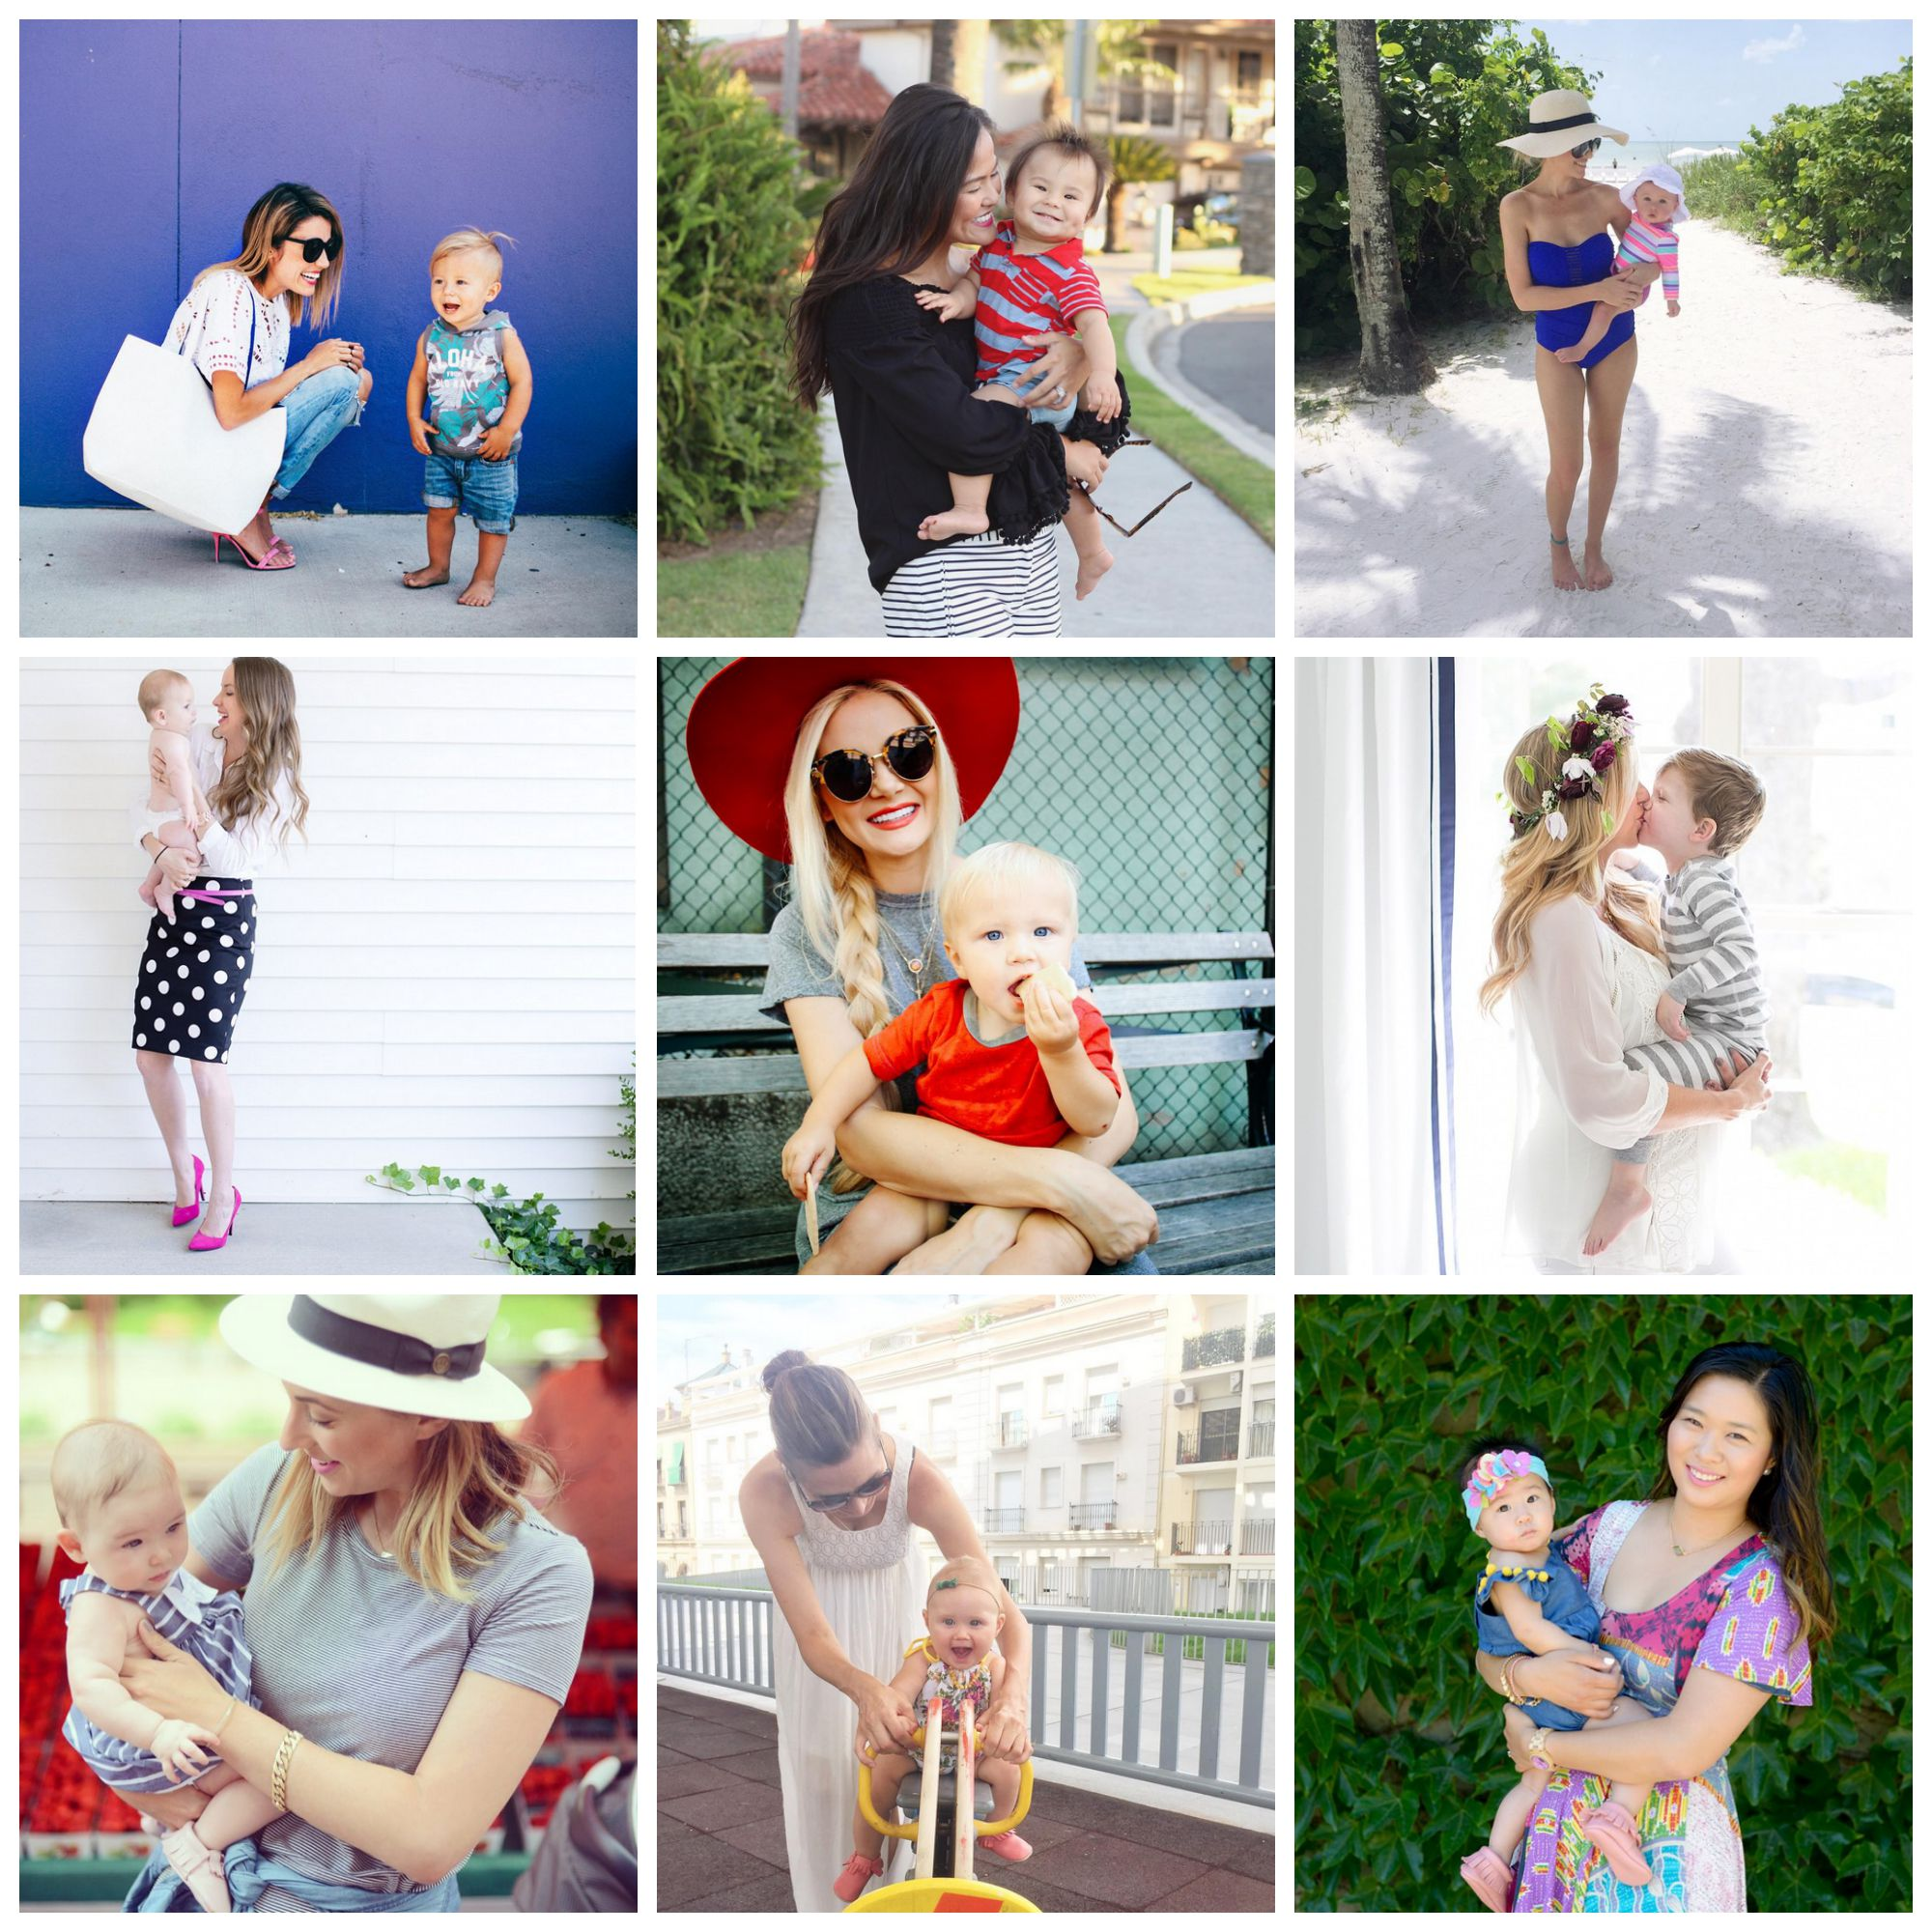 2bc22c374e 9 Inspiring Mom Bloggers To Follow On Instagram by Austin blogger Life By  Lee